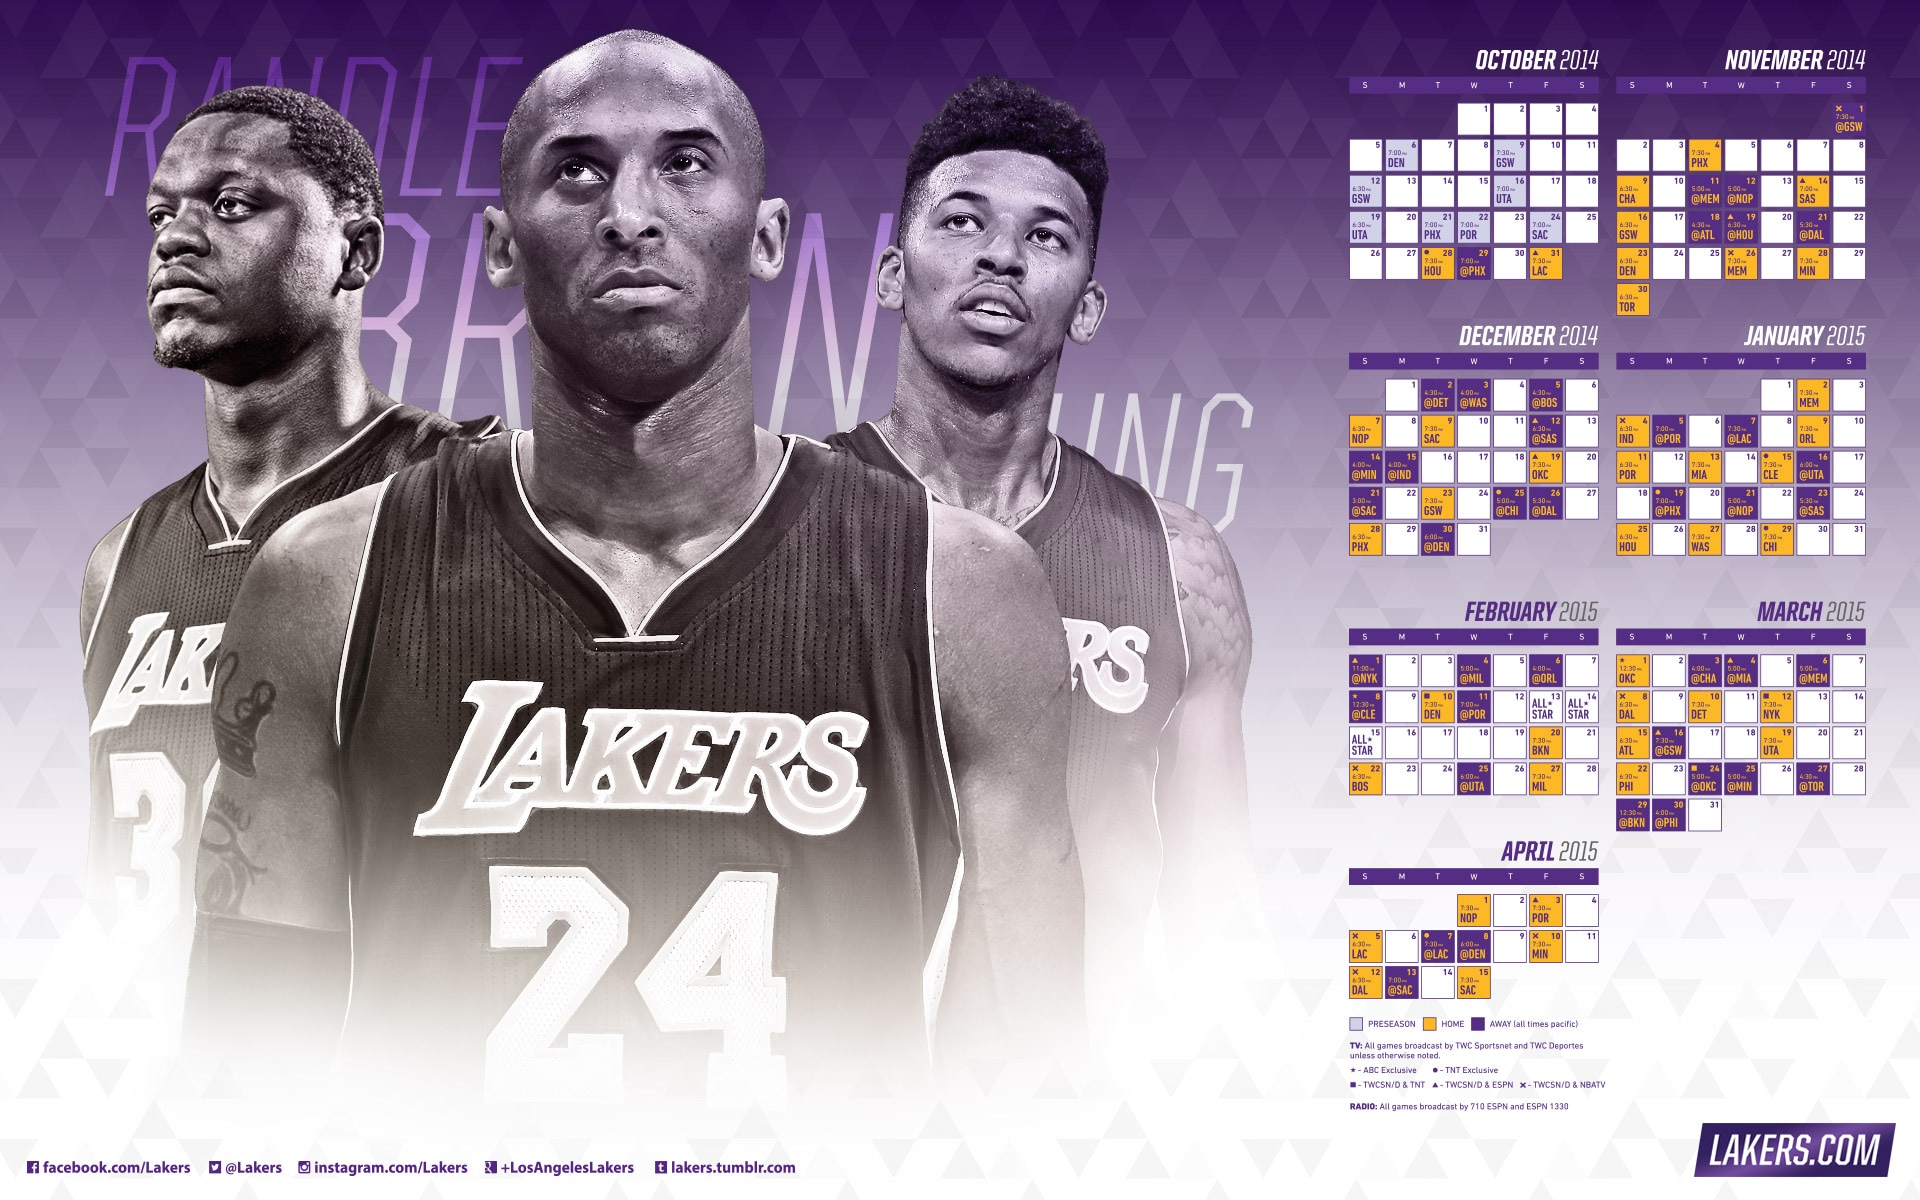 2014-15 Season Wallpaper Schedule